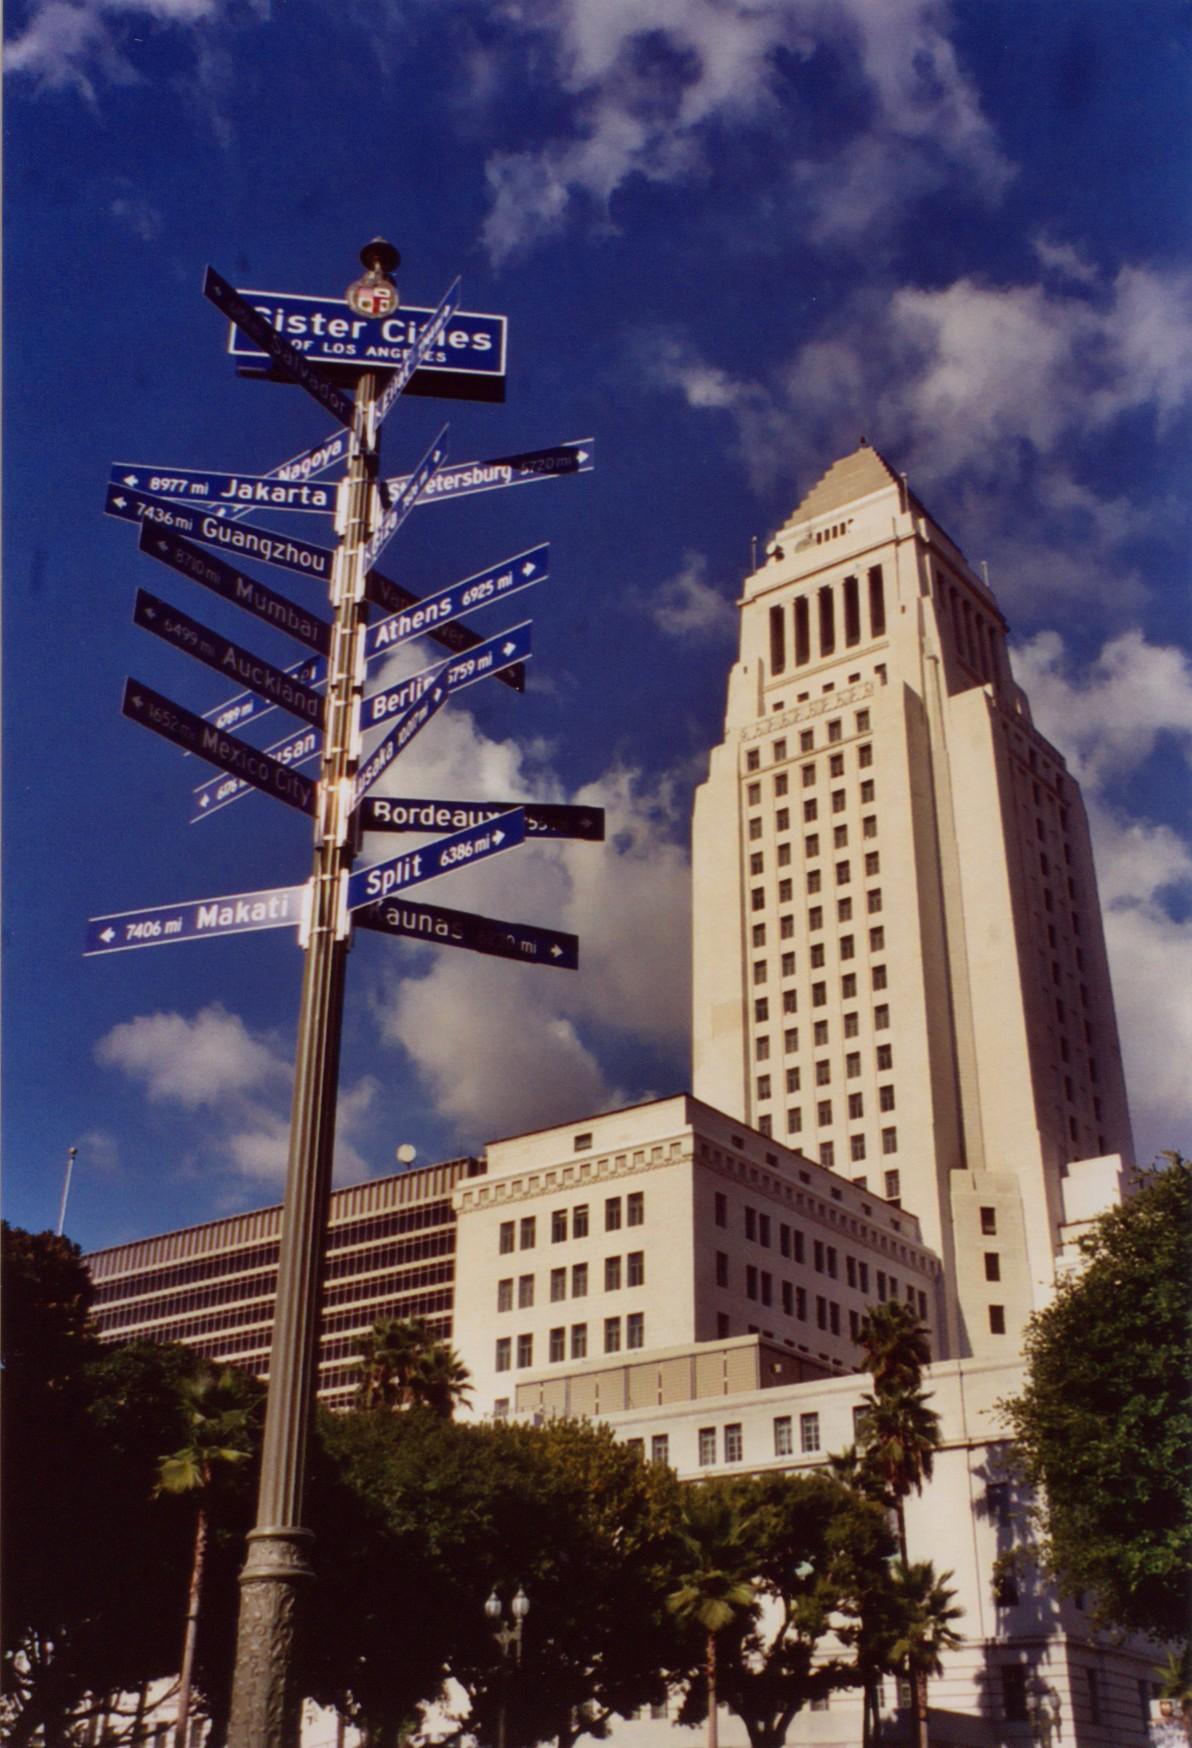 City Of Los Angeles Organizational Chart: Los Angeles City Hall with sister cities.jpg - Wikimedia Commons,Chart